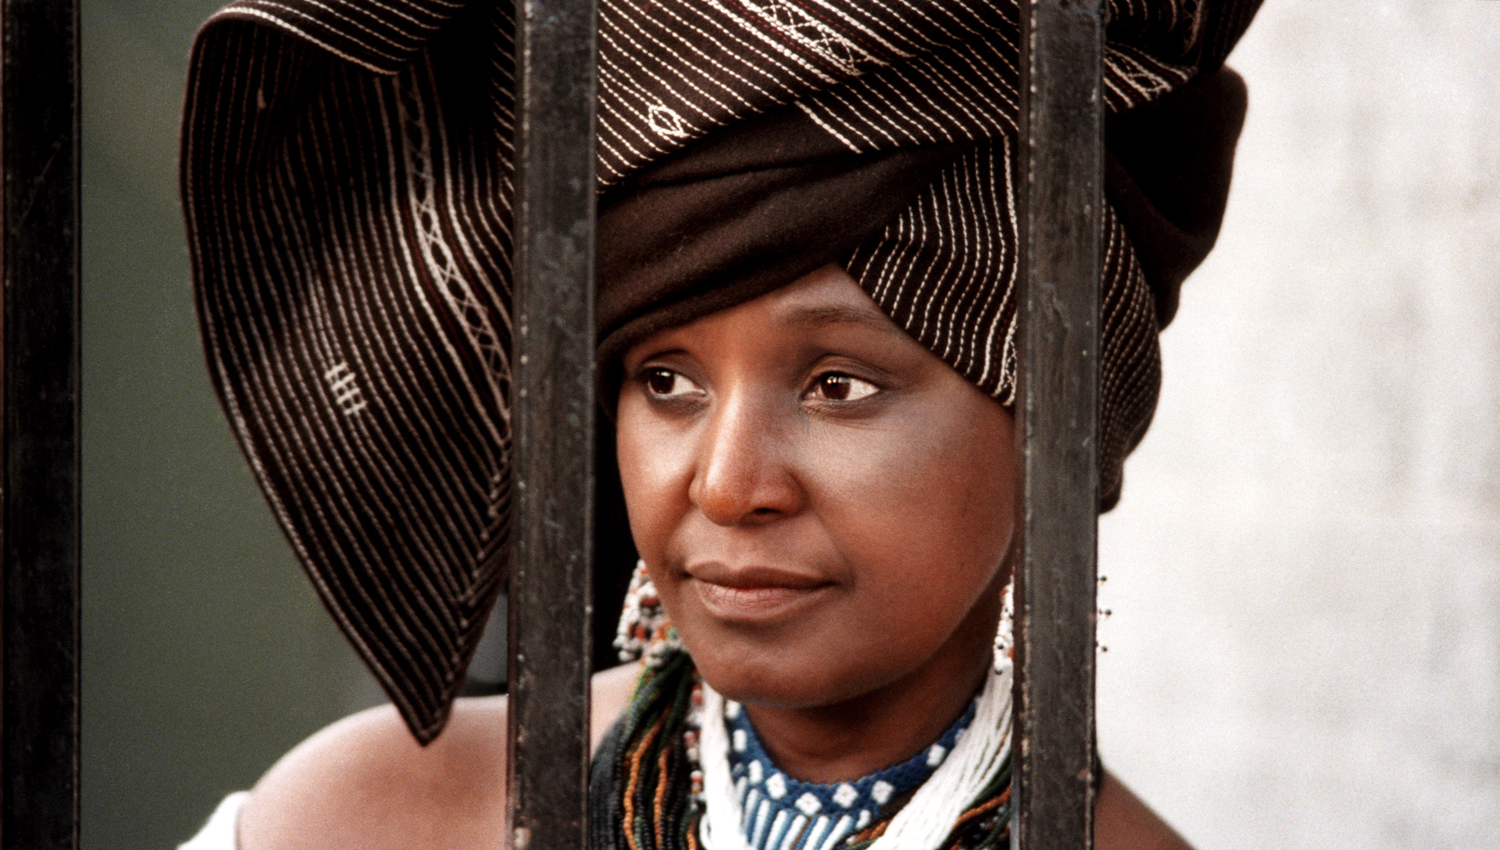 Winnie Mandela fell in love with and married Nelson Mandela when she was 24 years old. They had two children — both girls— during the two years before Mandela went to prison. Winnie herself was placed in solitary confinement for 18 months and was banished for nine years under house arrest in Brandfort. Through it all, Winnie remained the public persona of her husband. 1986.